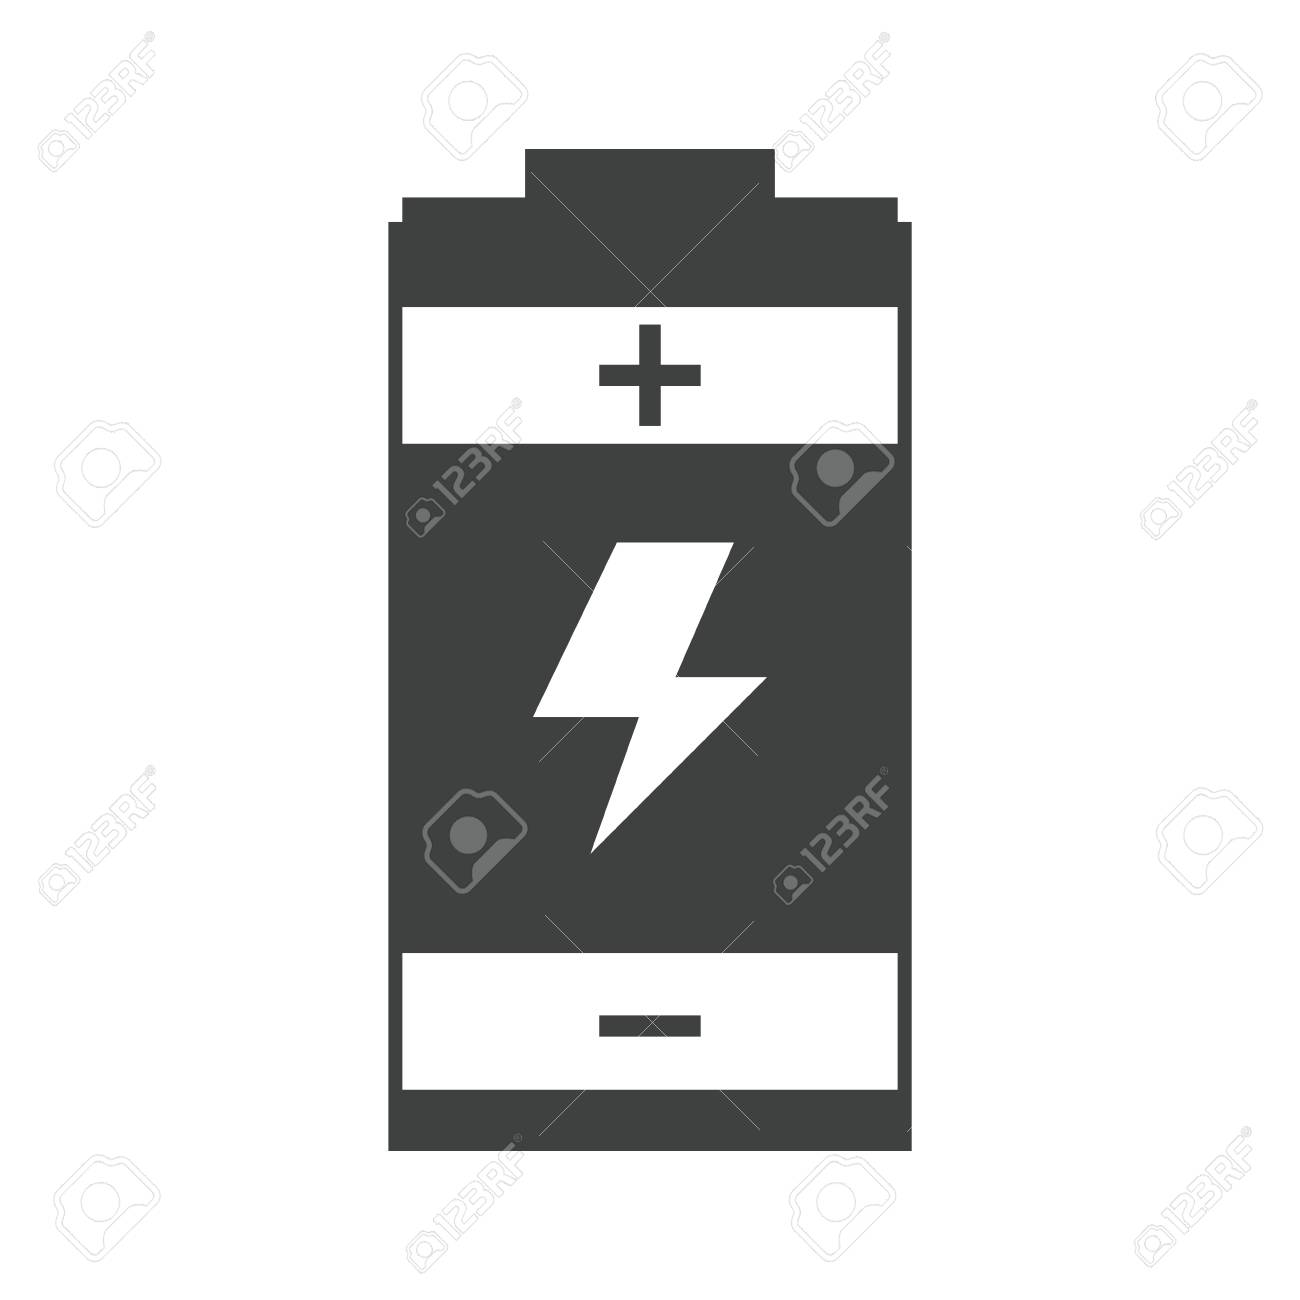 Battery Charger Energy Generation Symbol Pictogram Vector ...